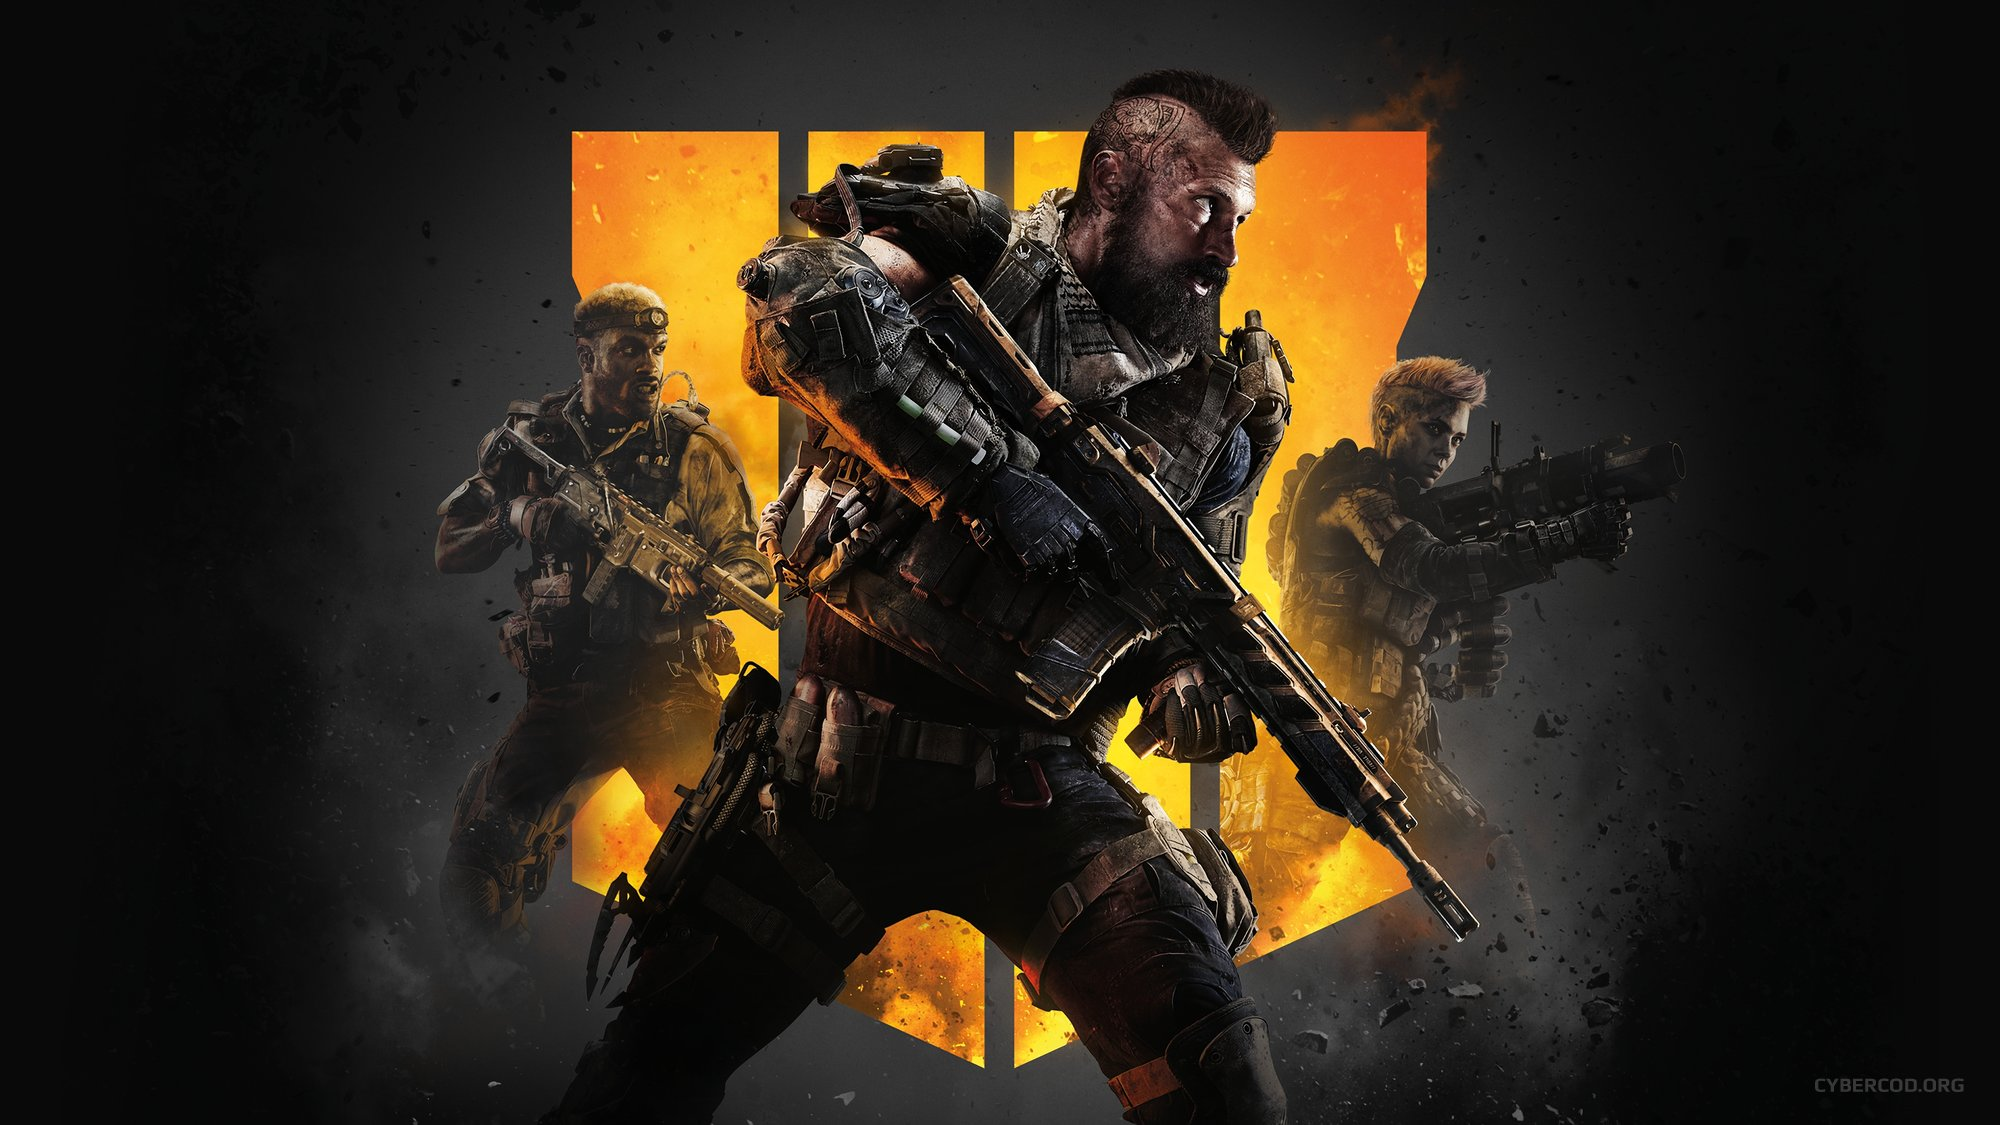 CALL OF DUTY: BLACK OPS IIII VIDEO GAME SOLDIERS